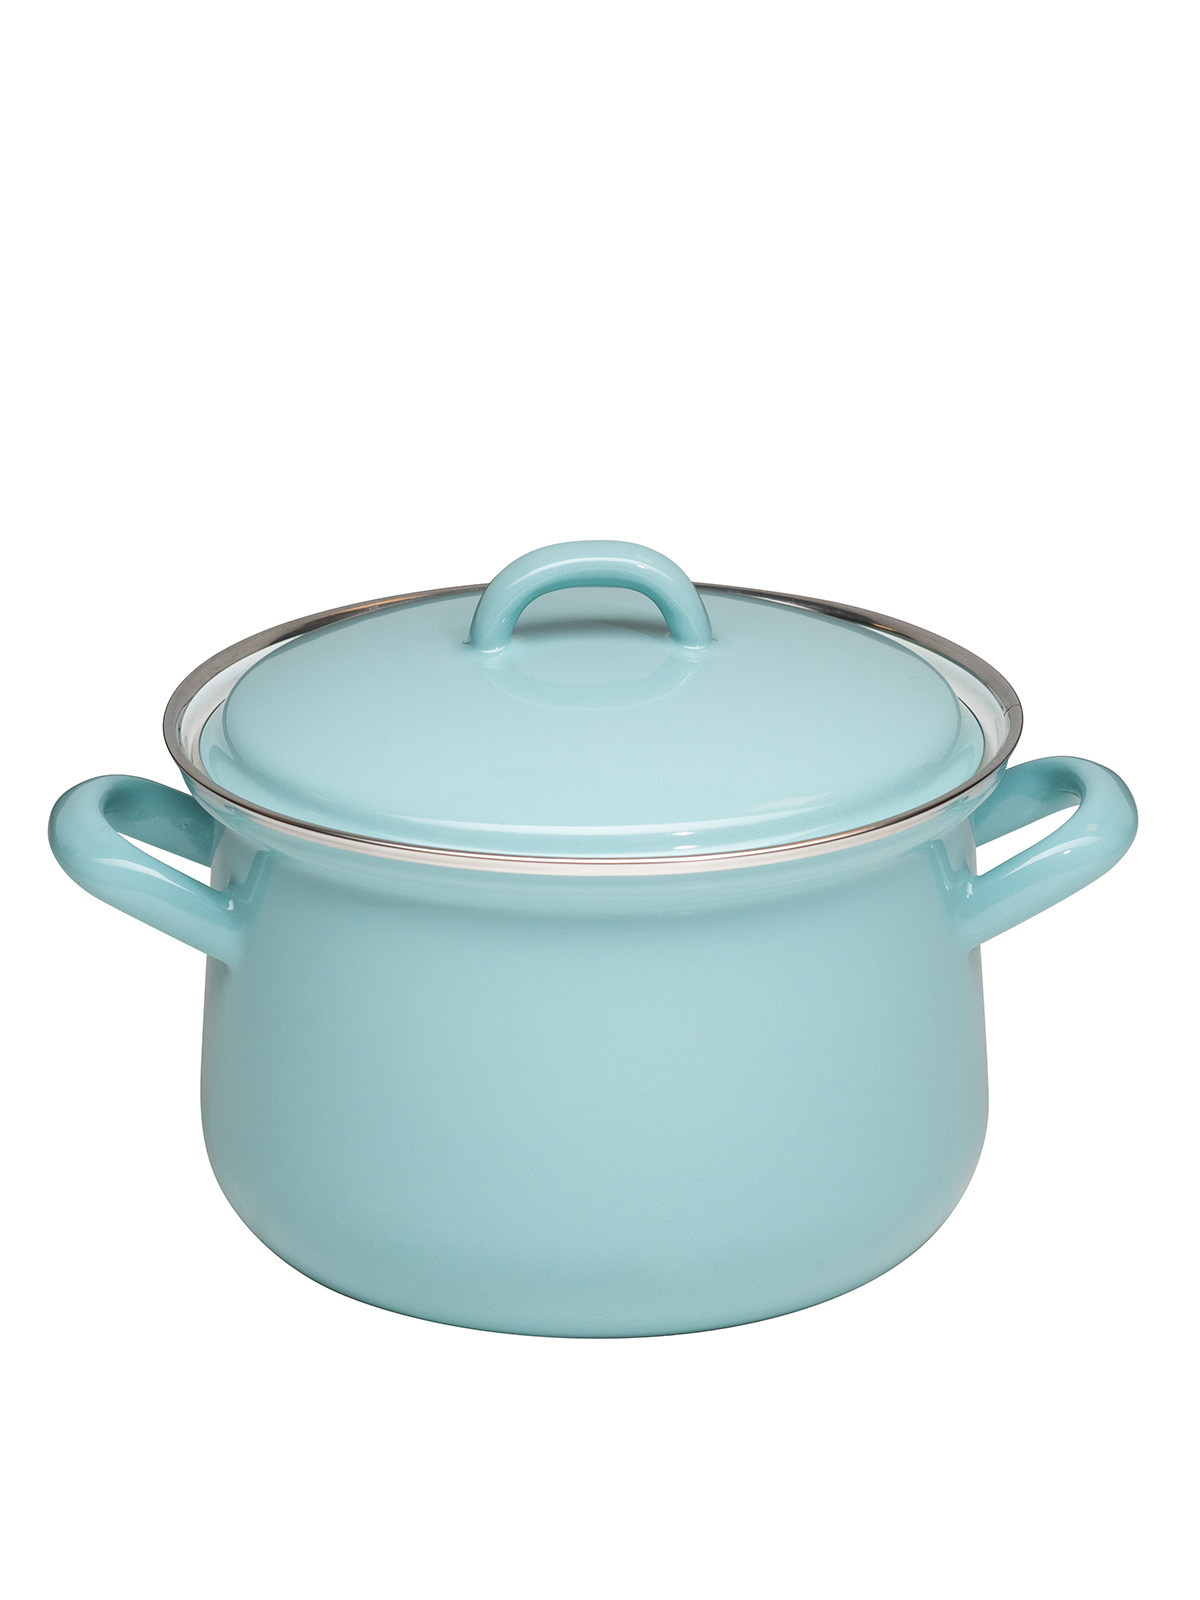 high pot light green 1.5l (0606-109)